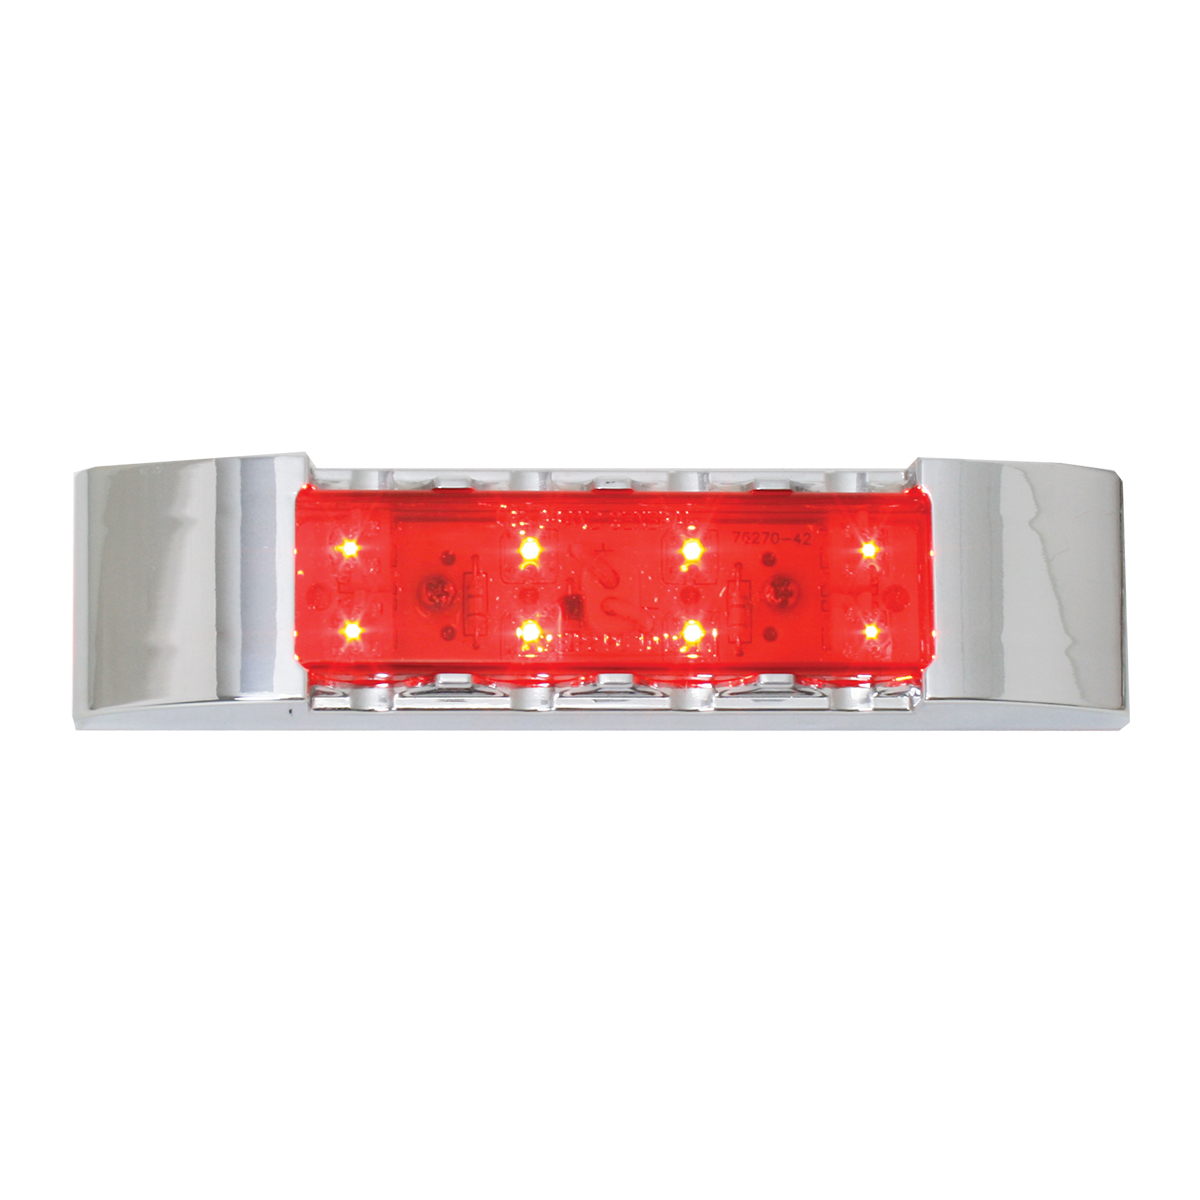 76182 Rectangular Wide Angle LED Light w/ Chrome Plastic Bezel